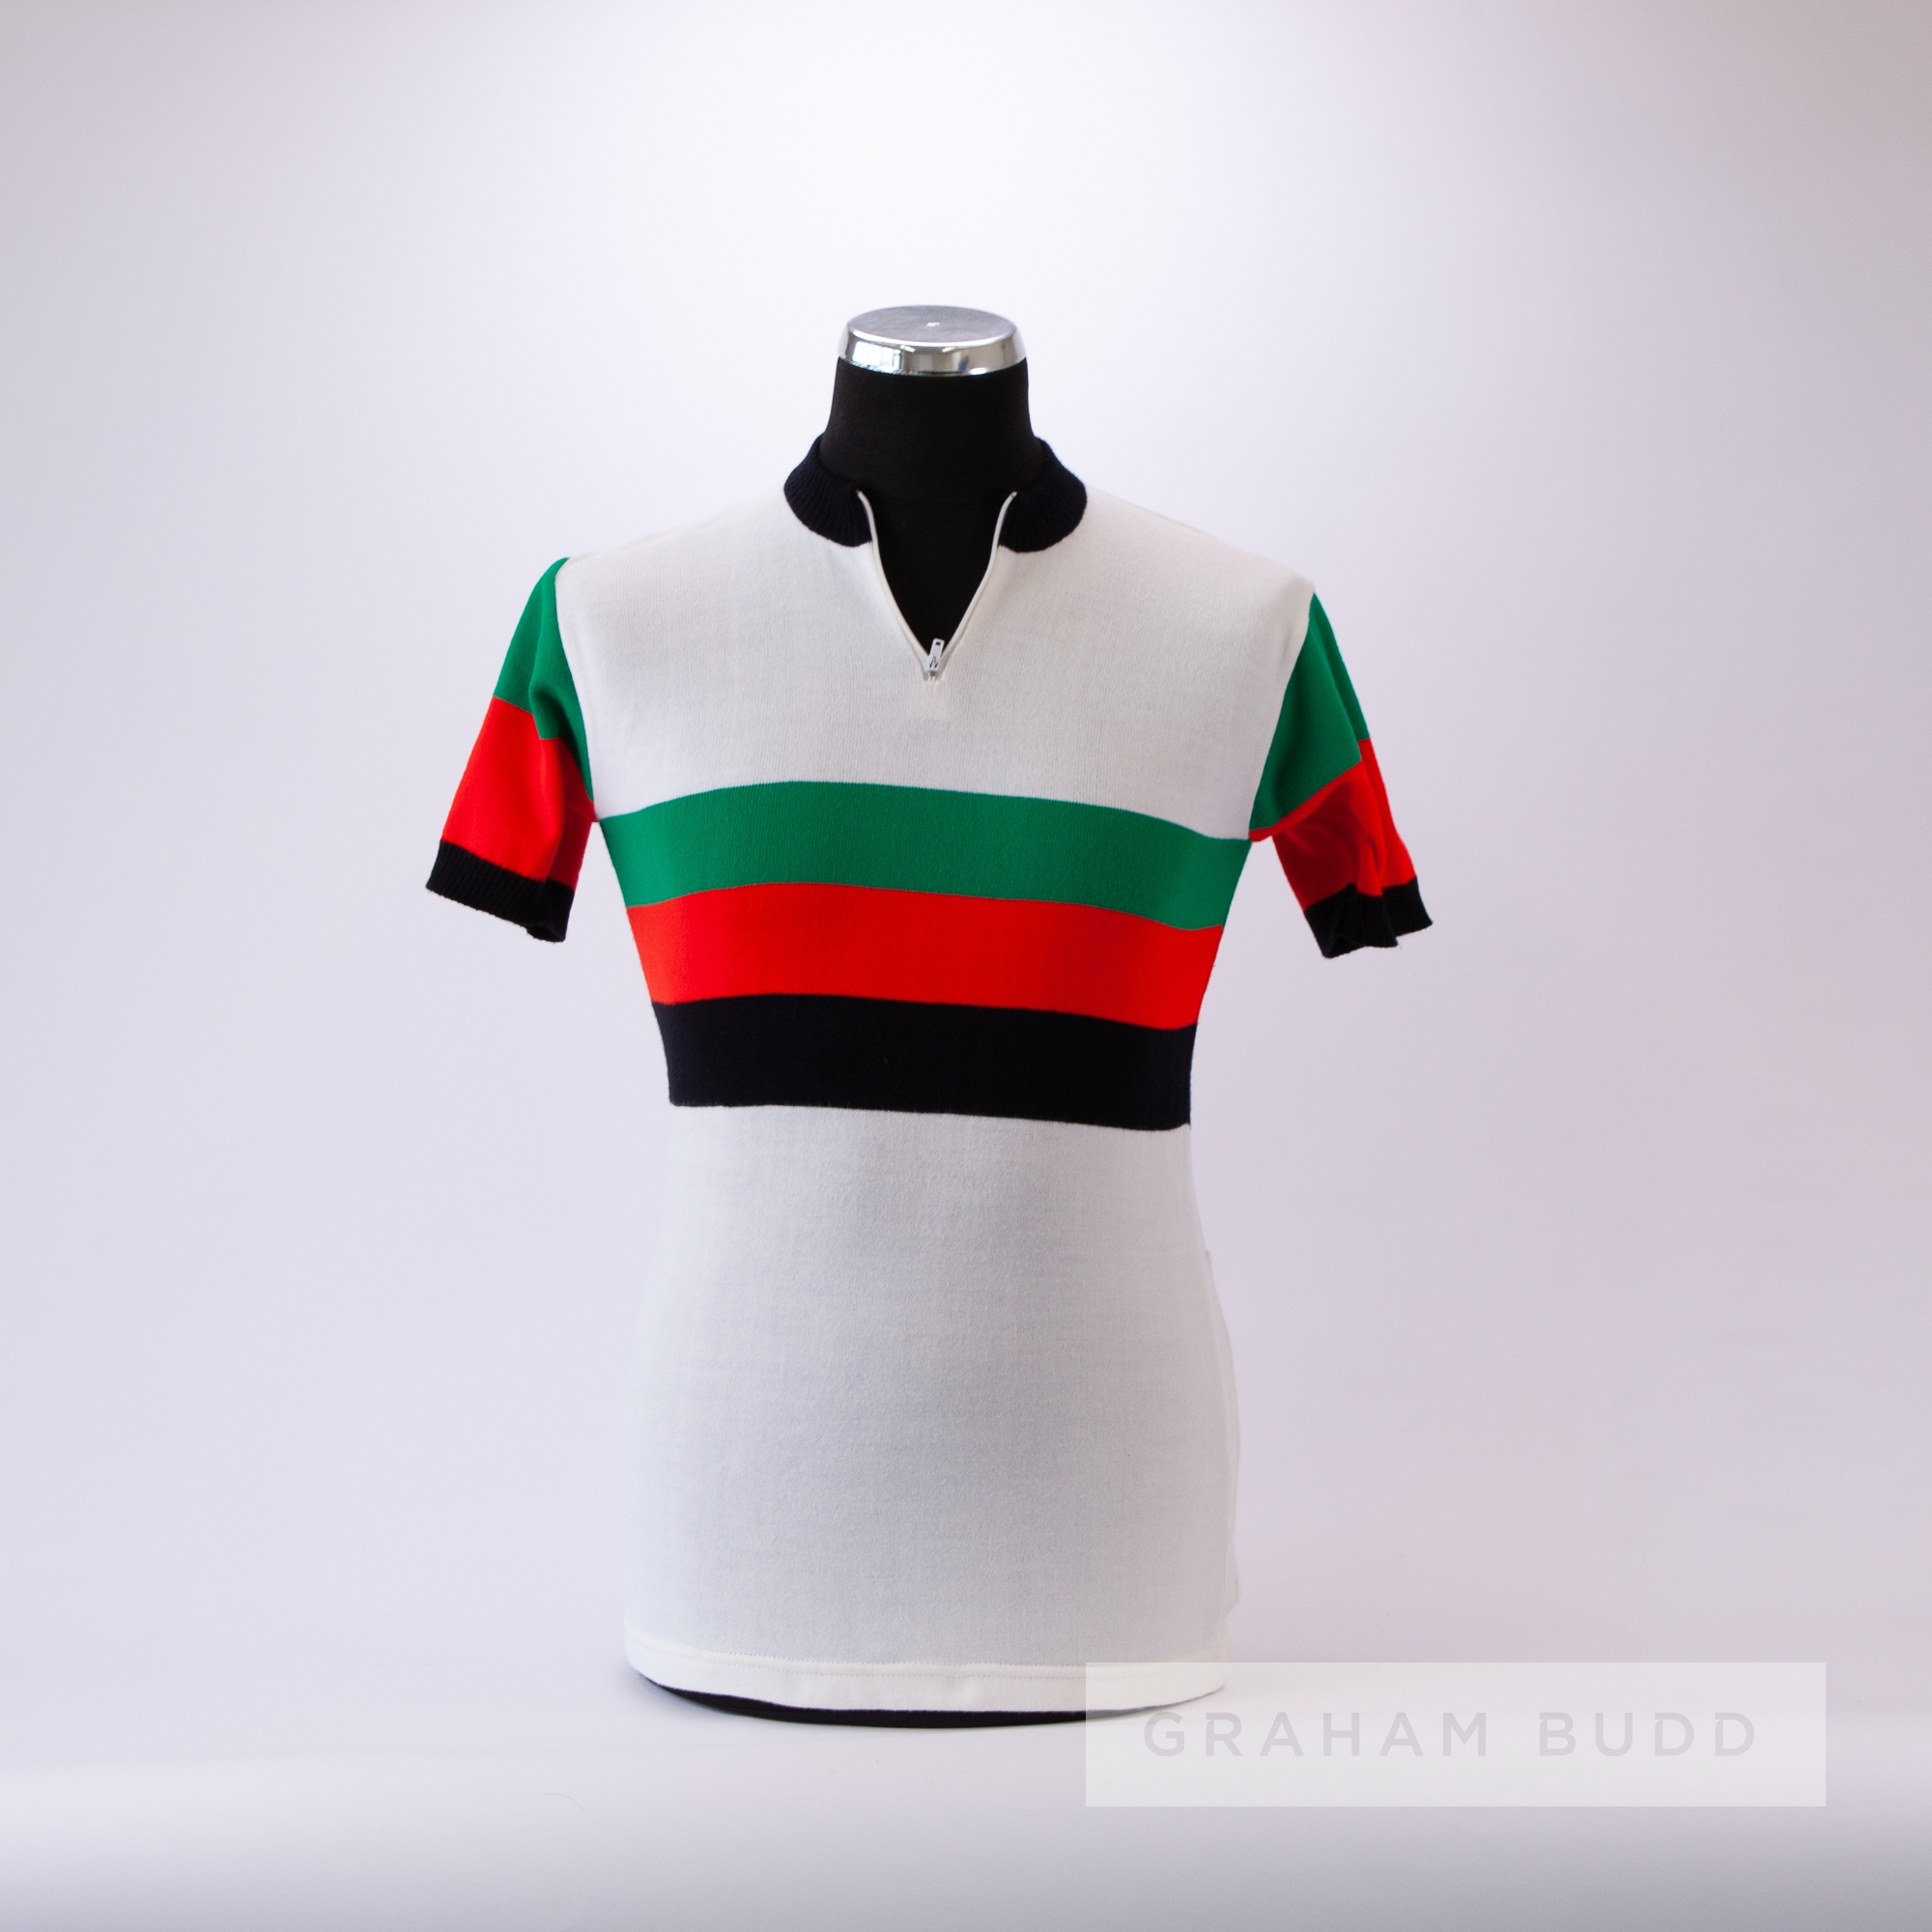 1970s white, green, red and black vintage Cycling race jersey by Maglifico Joli, scarce, acrylic - Image 3 of 4